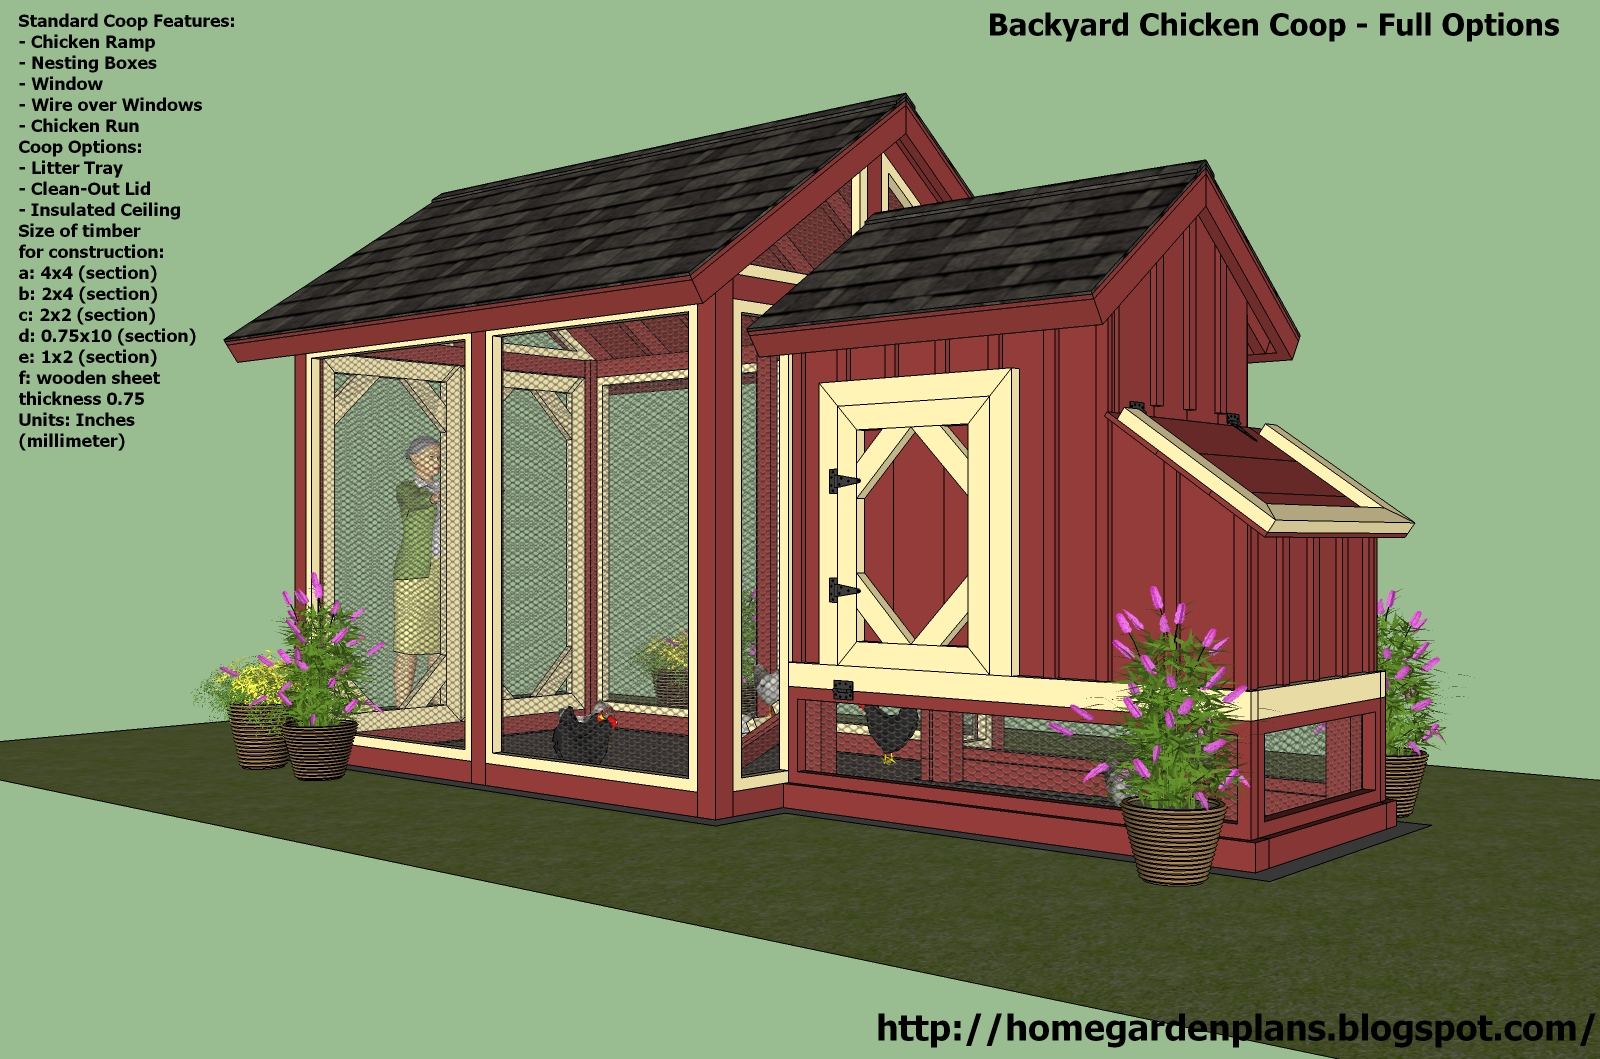 Home garden plans news s101 small chicken coop free for Chicken coop size for 6 chickens